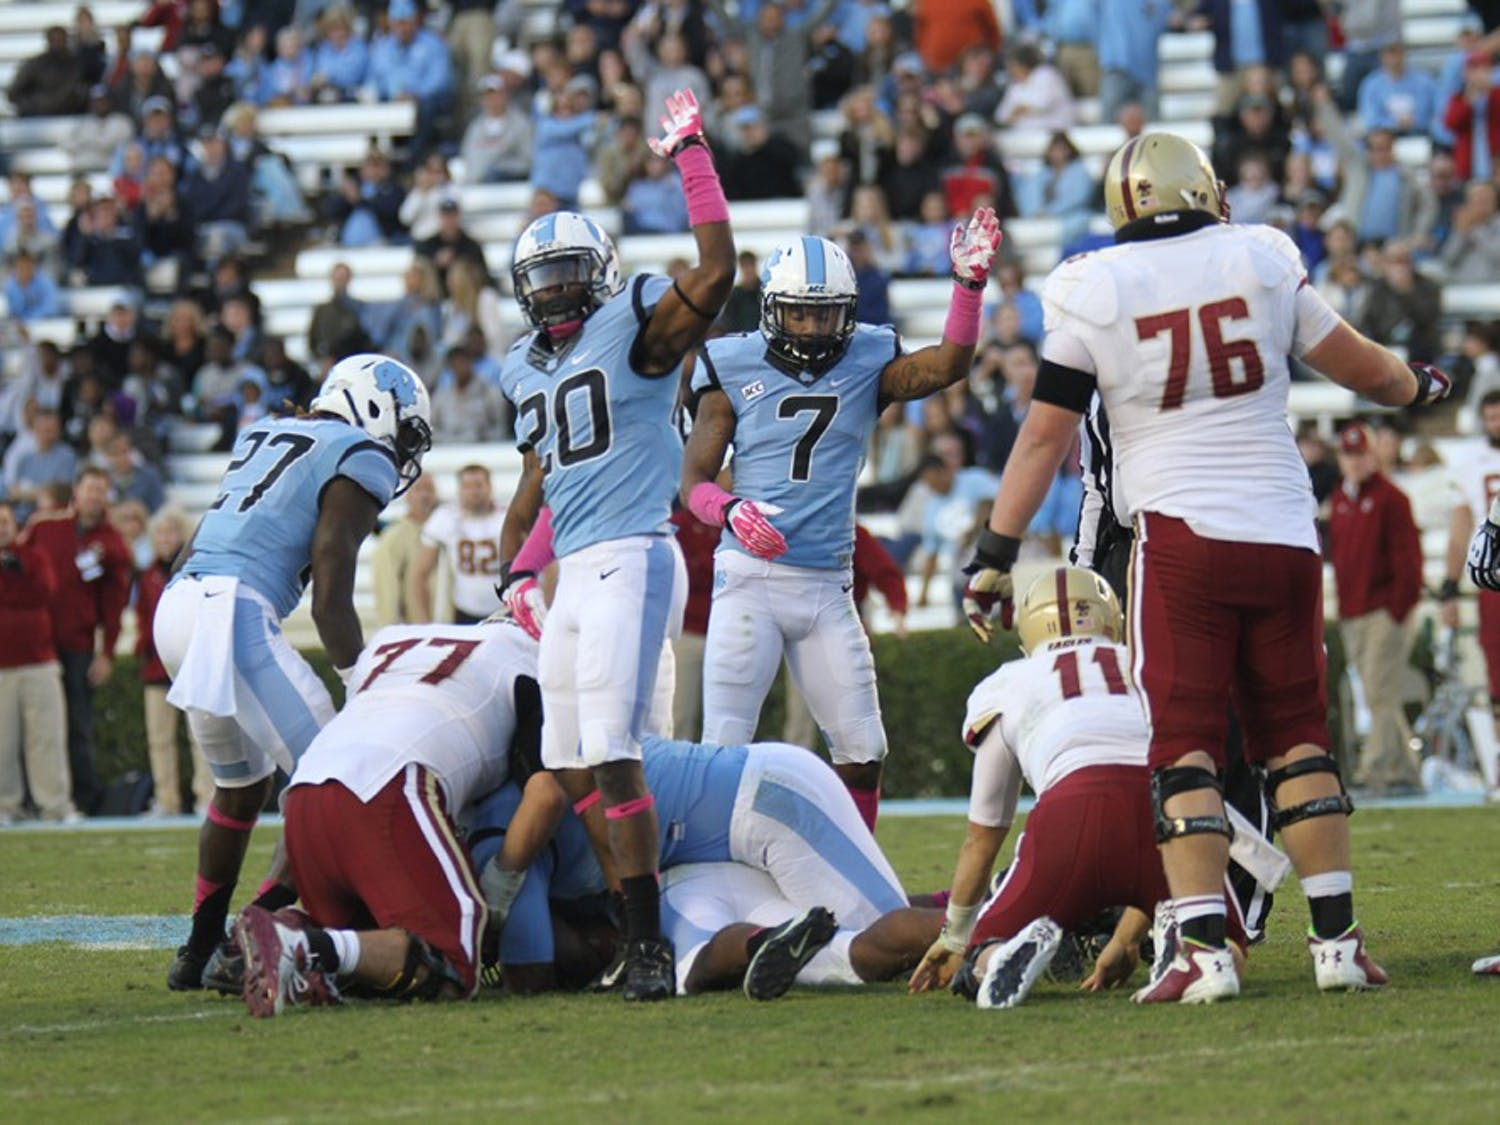 UNC's Brandon Ellerbe (20) and Tim Scott (7) motion for possession of the ball after UNC recovered the fumble.